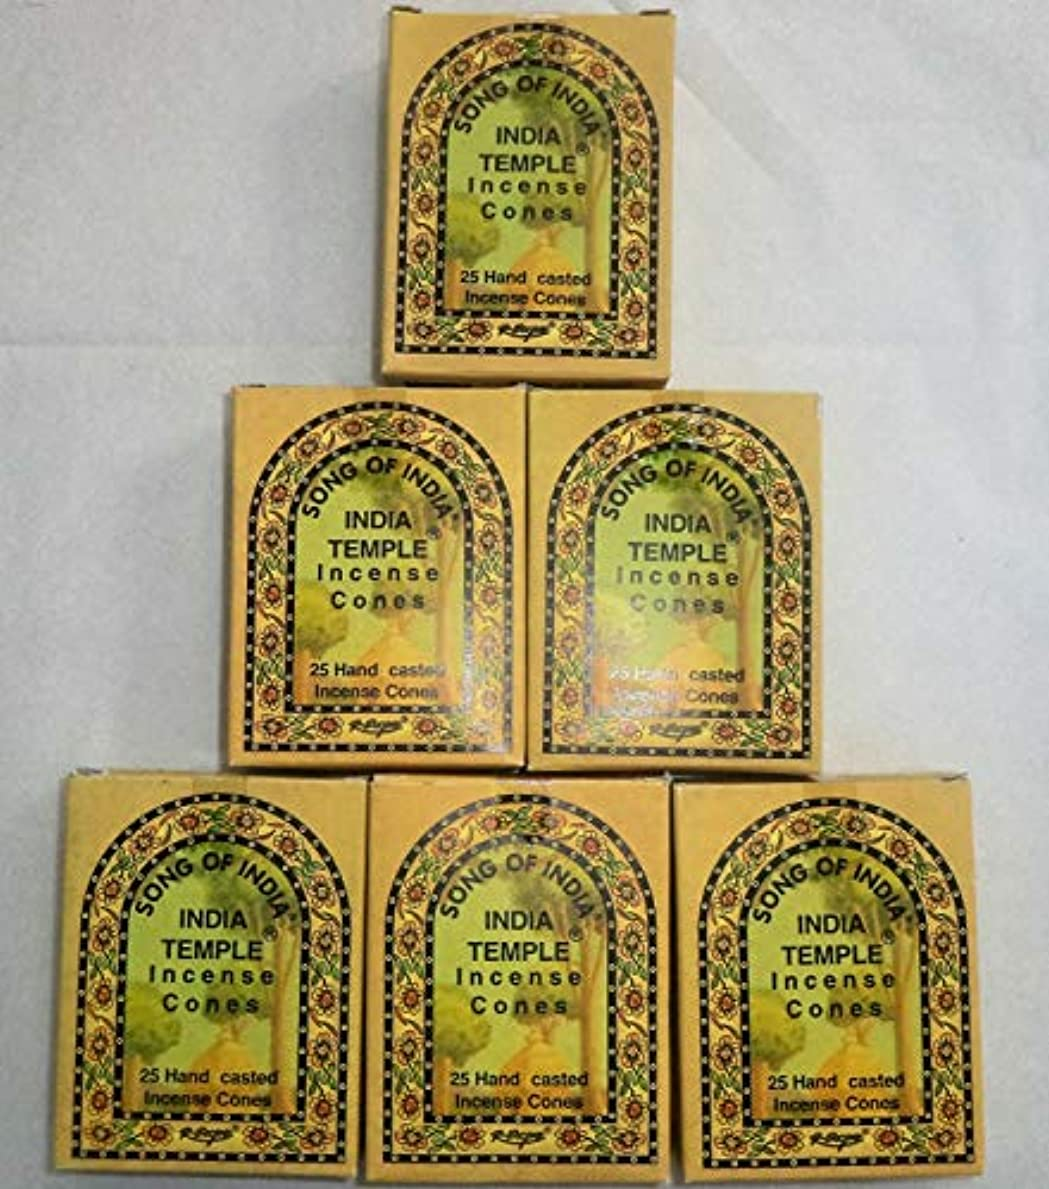 アトラスあたたかい量Song of India Temple Cone Incense, 6 x 25 Cone Pack, 150 Cones Total